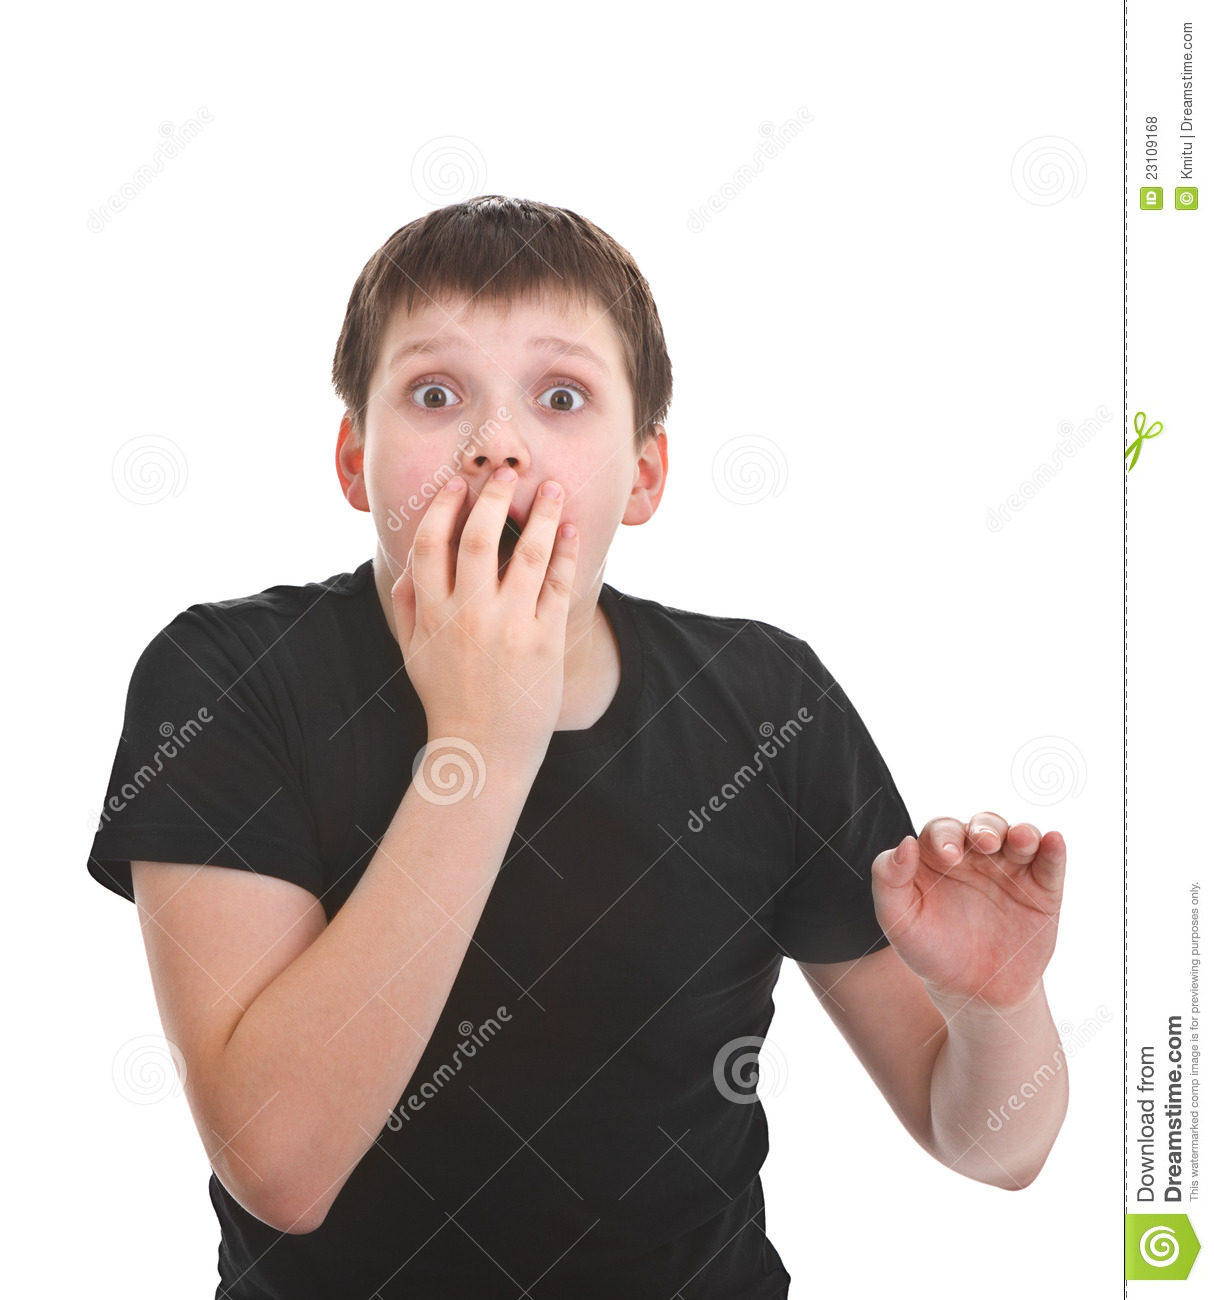 Surprised young boy stock photo  Image of wonder, portrait